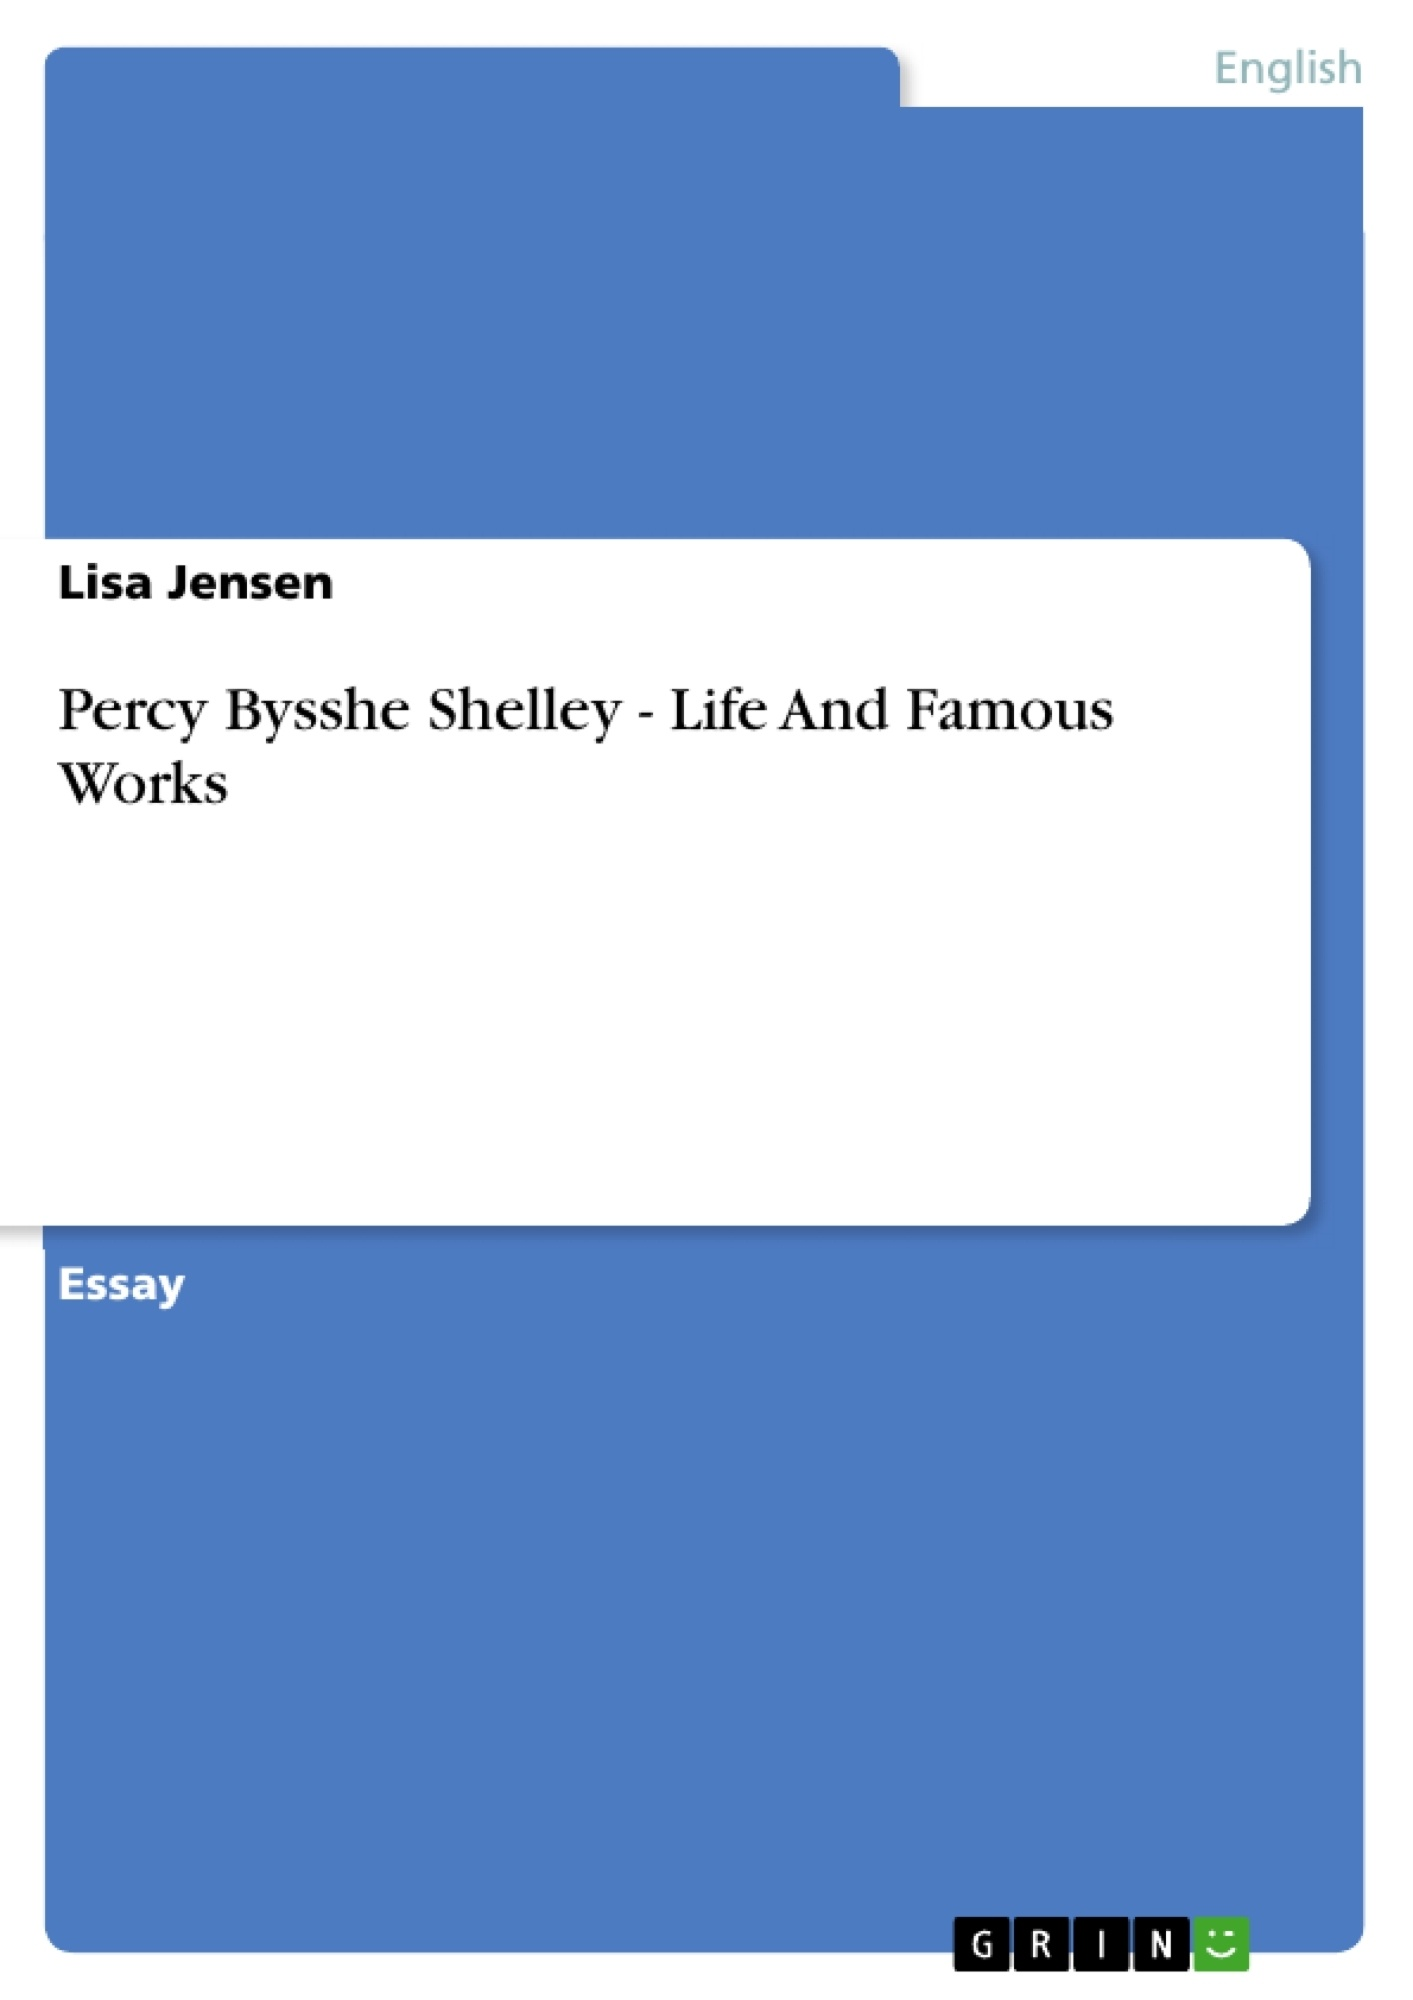 Title: Percy Bysshe Shelley - Life And Famous Works